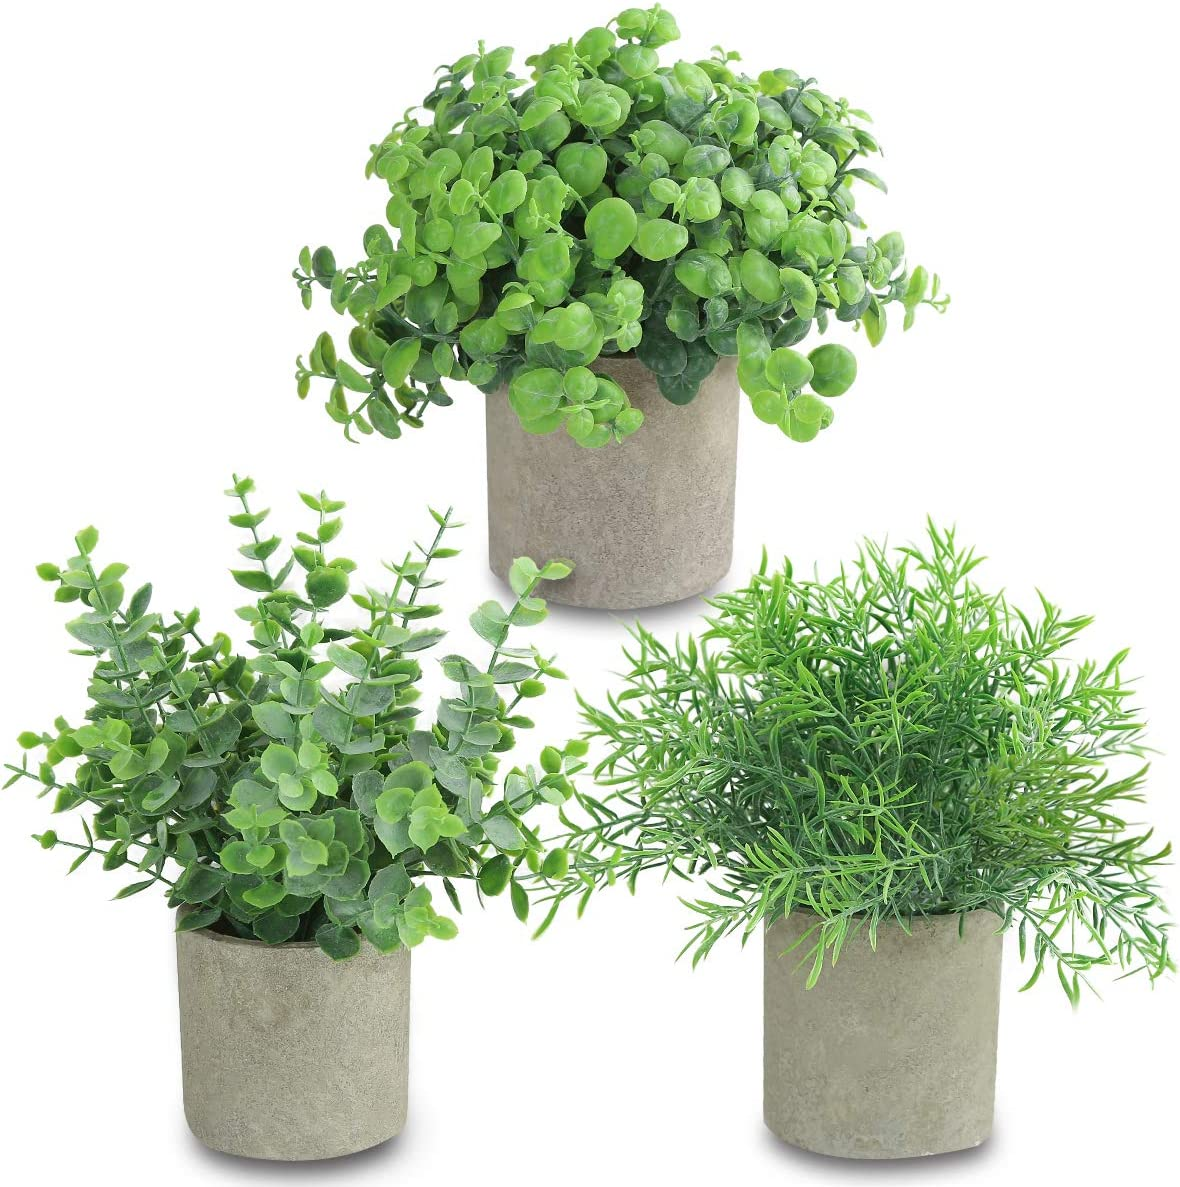 Joyhalo 3 Pack Artificial Potted Plants-Faux Eucalyptus & Rosemary Greenery in Pots Small Houseplants for Indoor Tabletop Decor